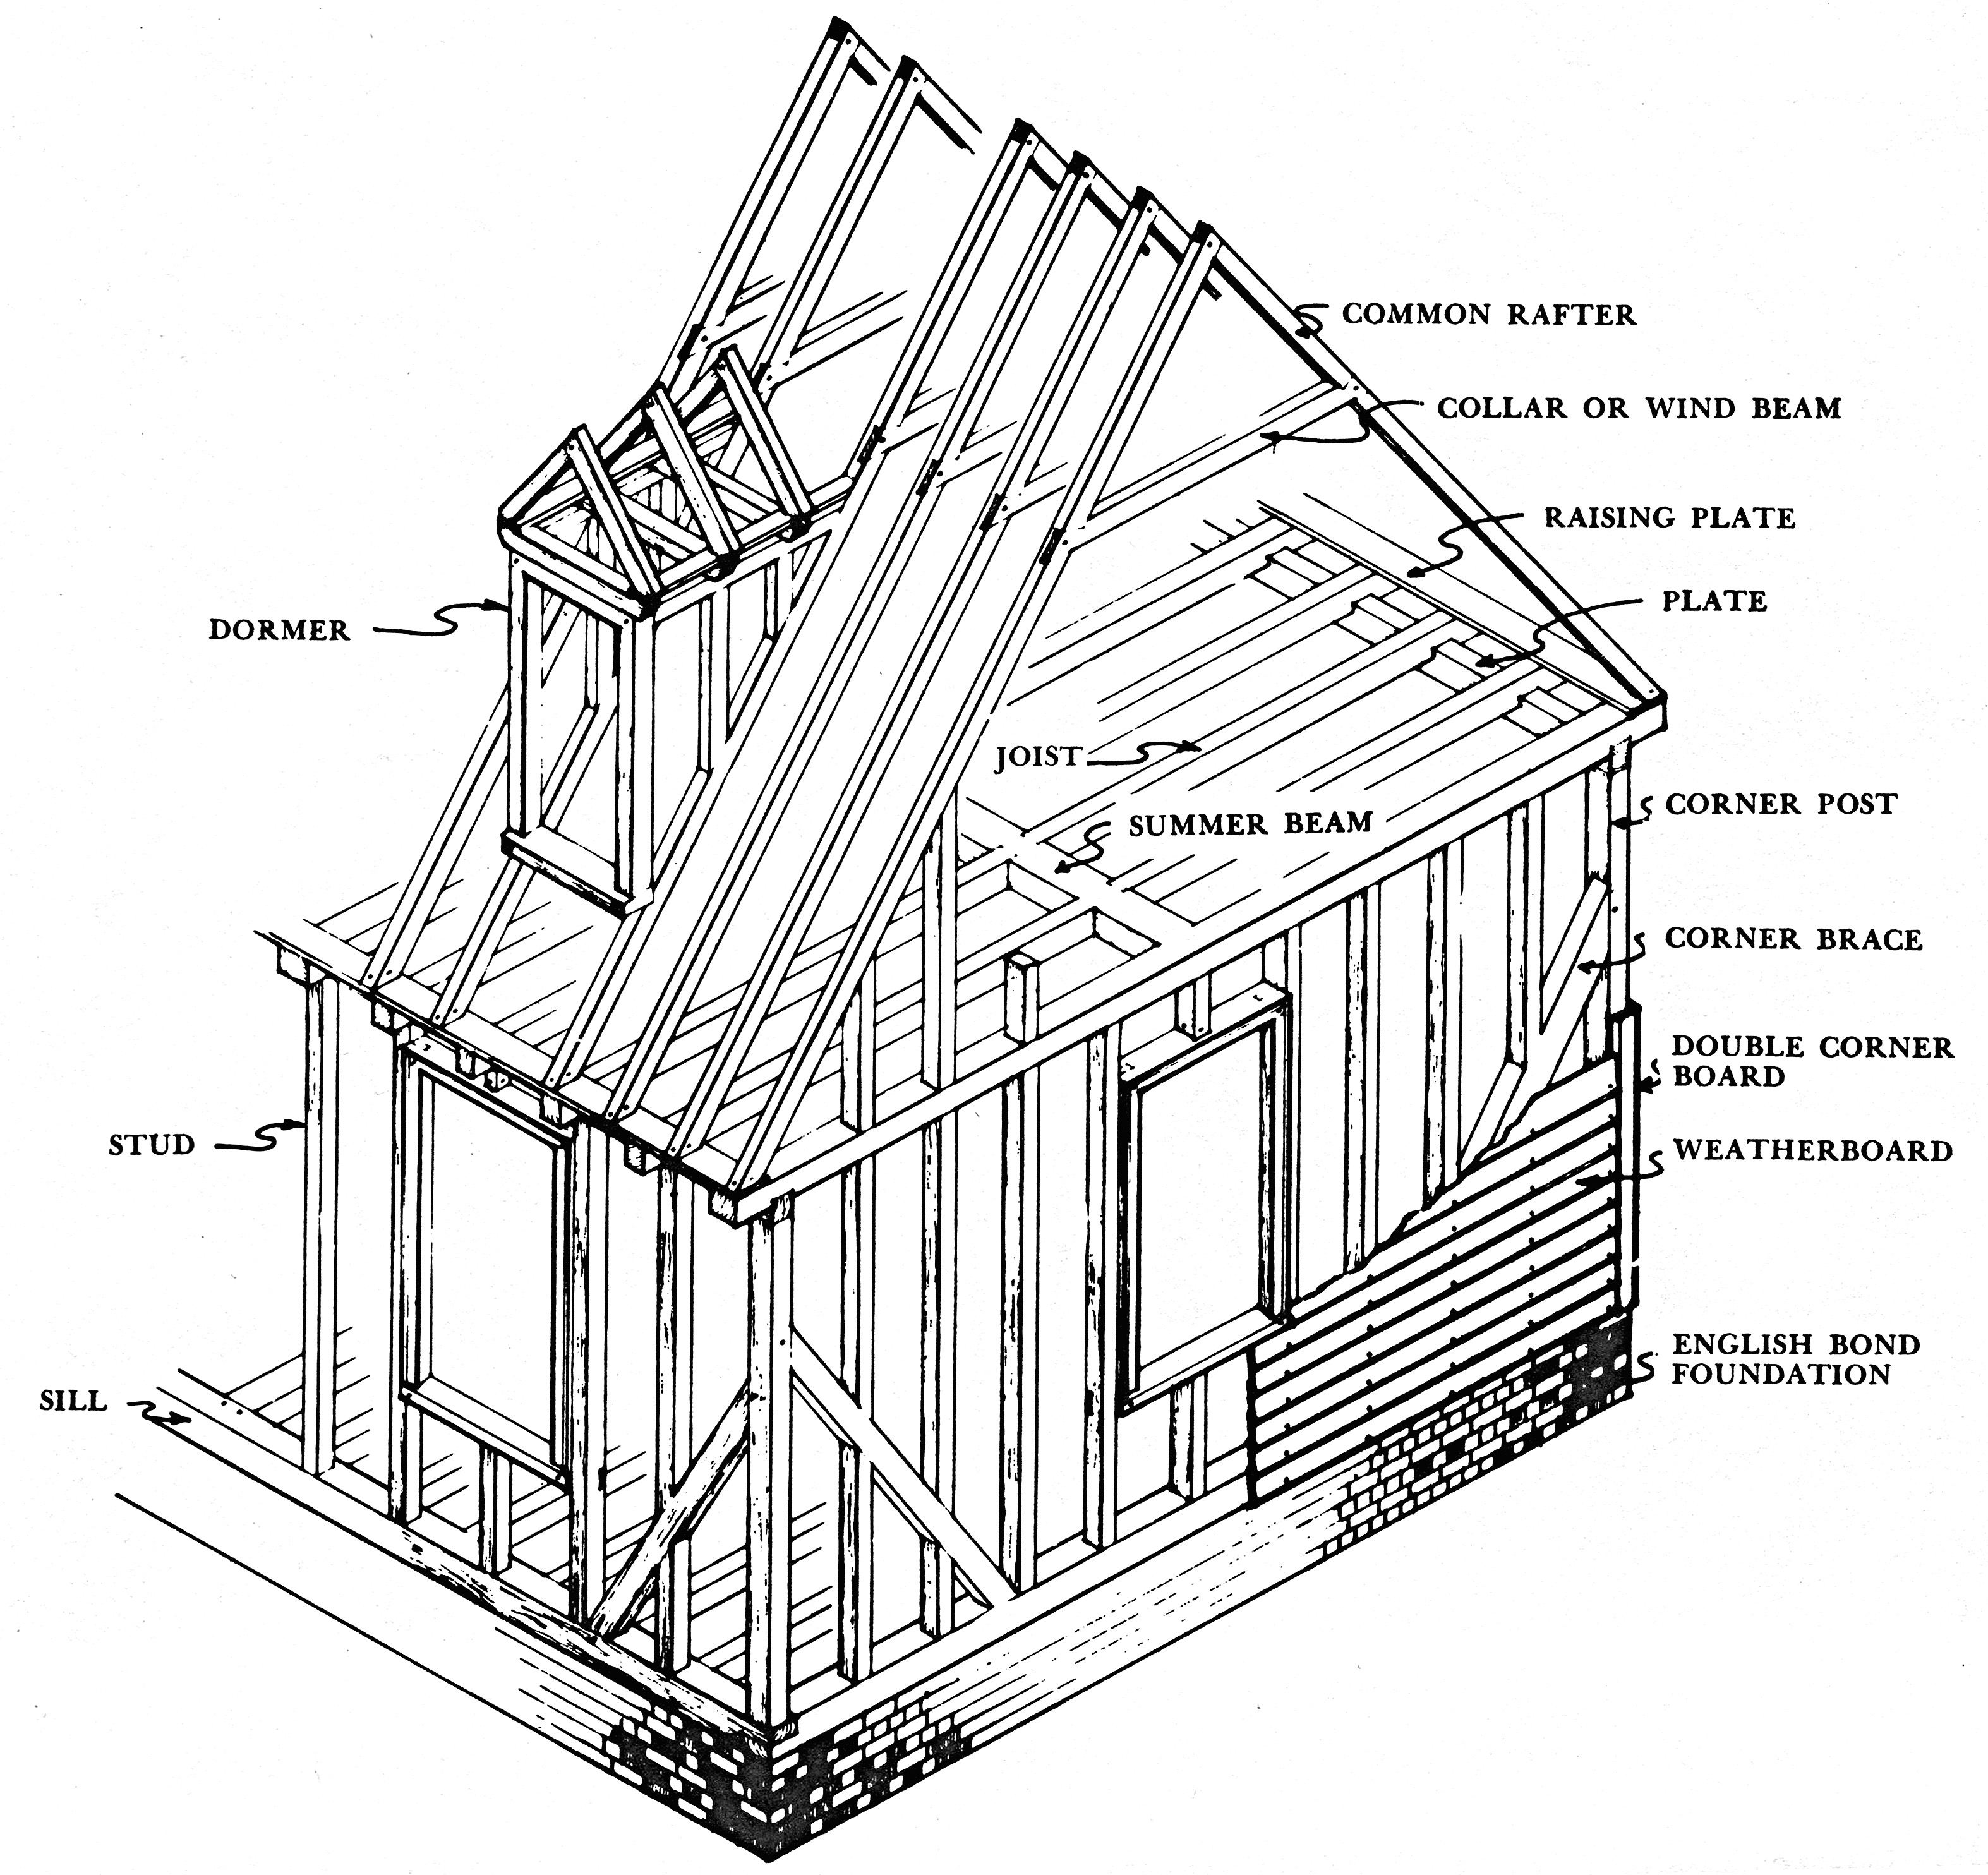 Carriage Colonial Dd A 7 1 moreover Timber roof truss in addition 10x12 Shed Plan further Eco Family 1900 moreover Shed Roof Framing Overhang Here. on porch post framing details